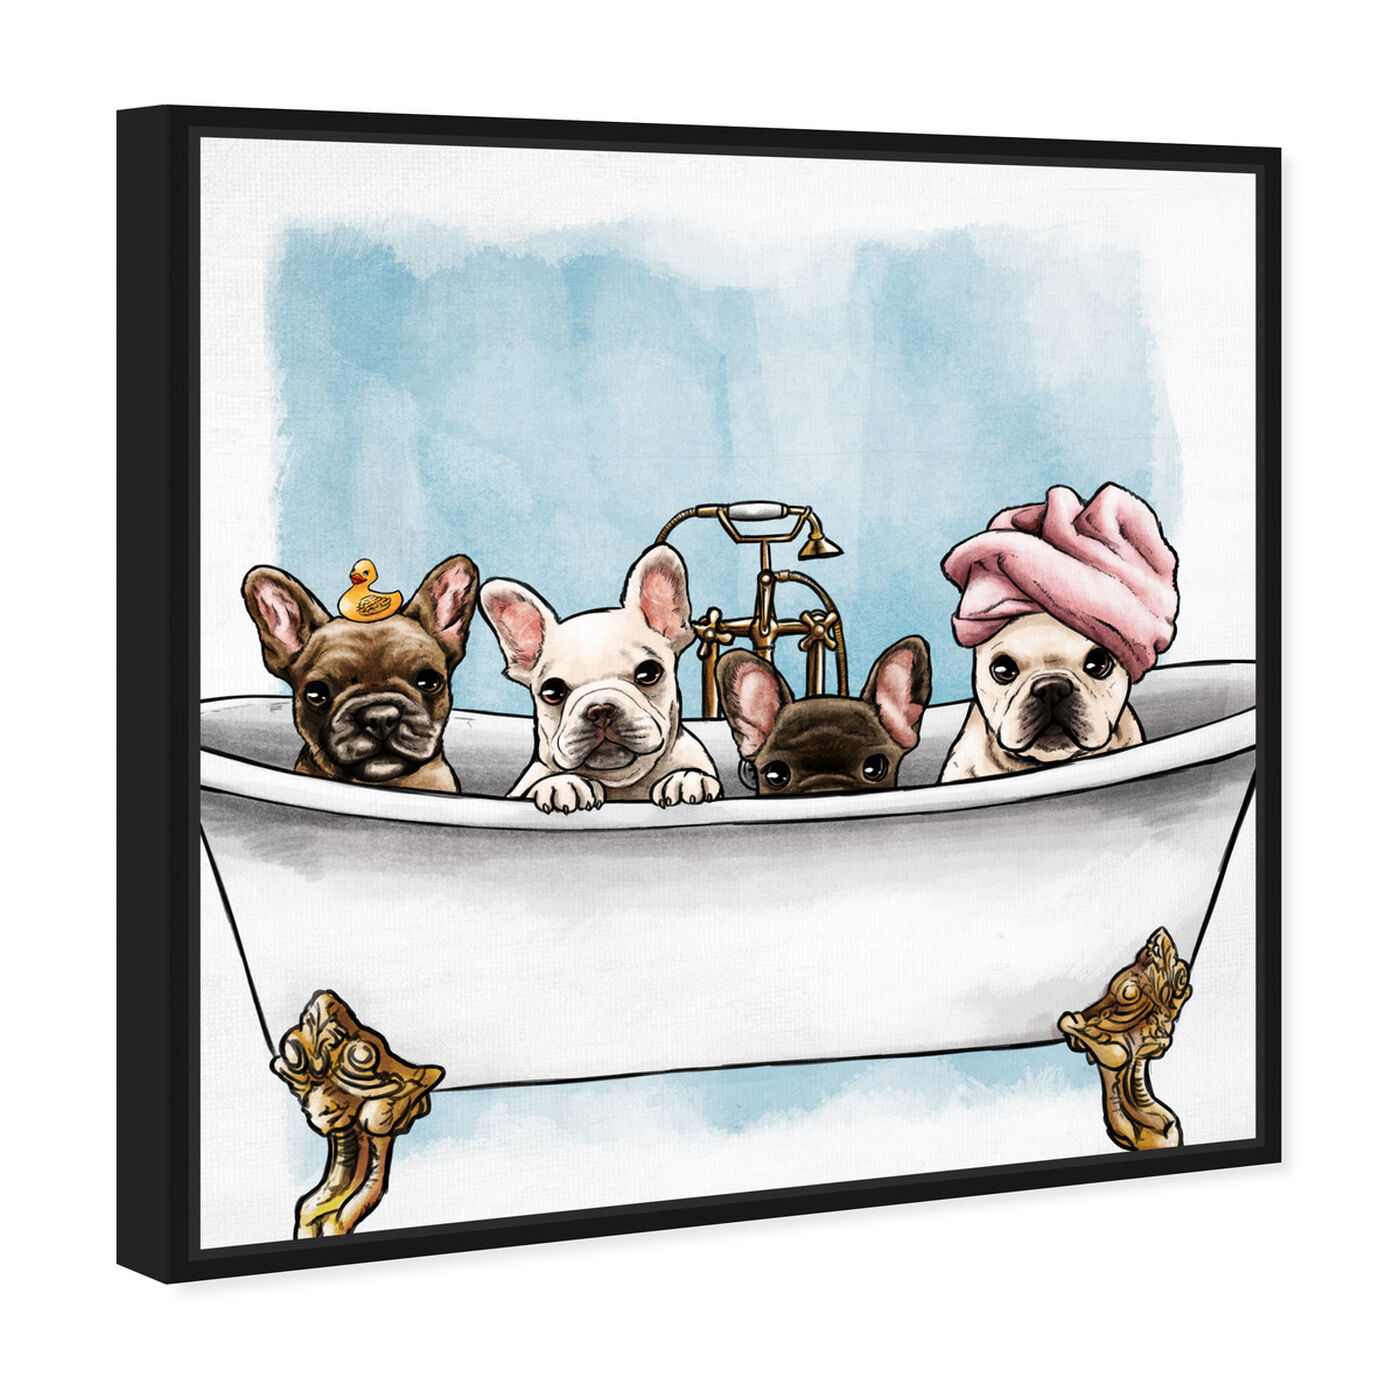 Angled view of Frenchies In The Tub featuring animals and dogs and puppies art.